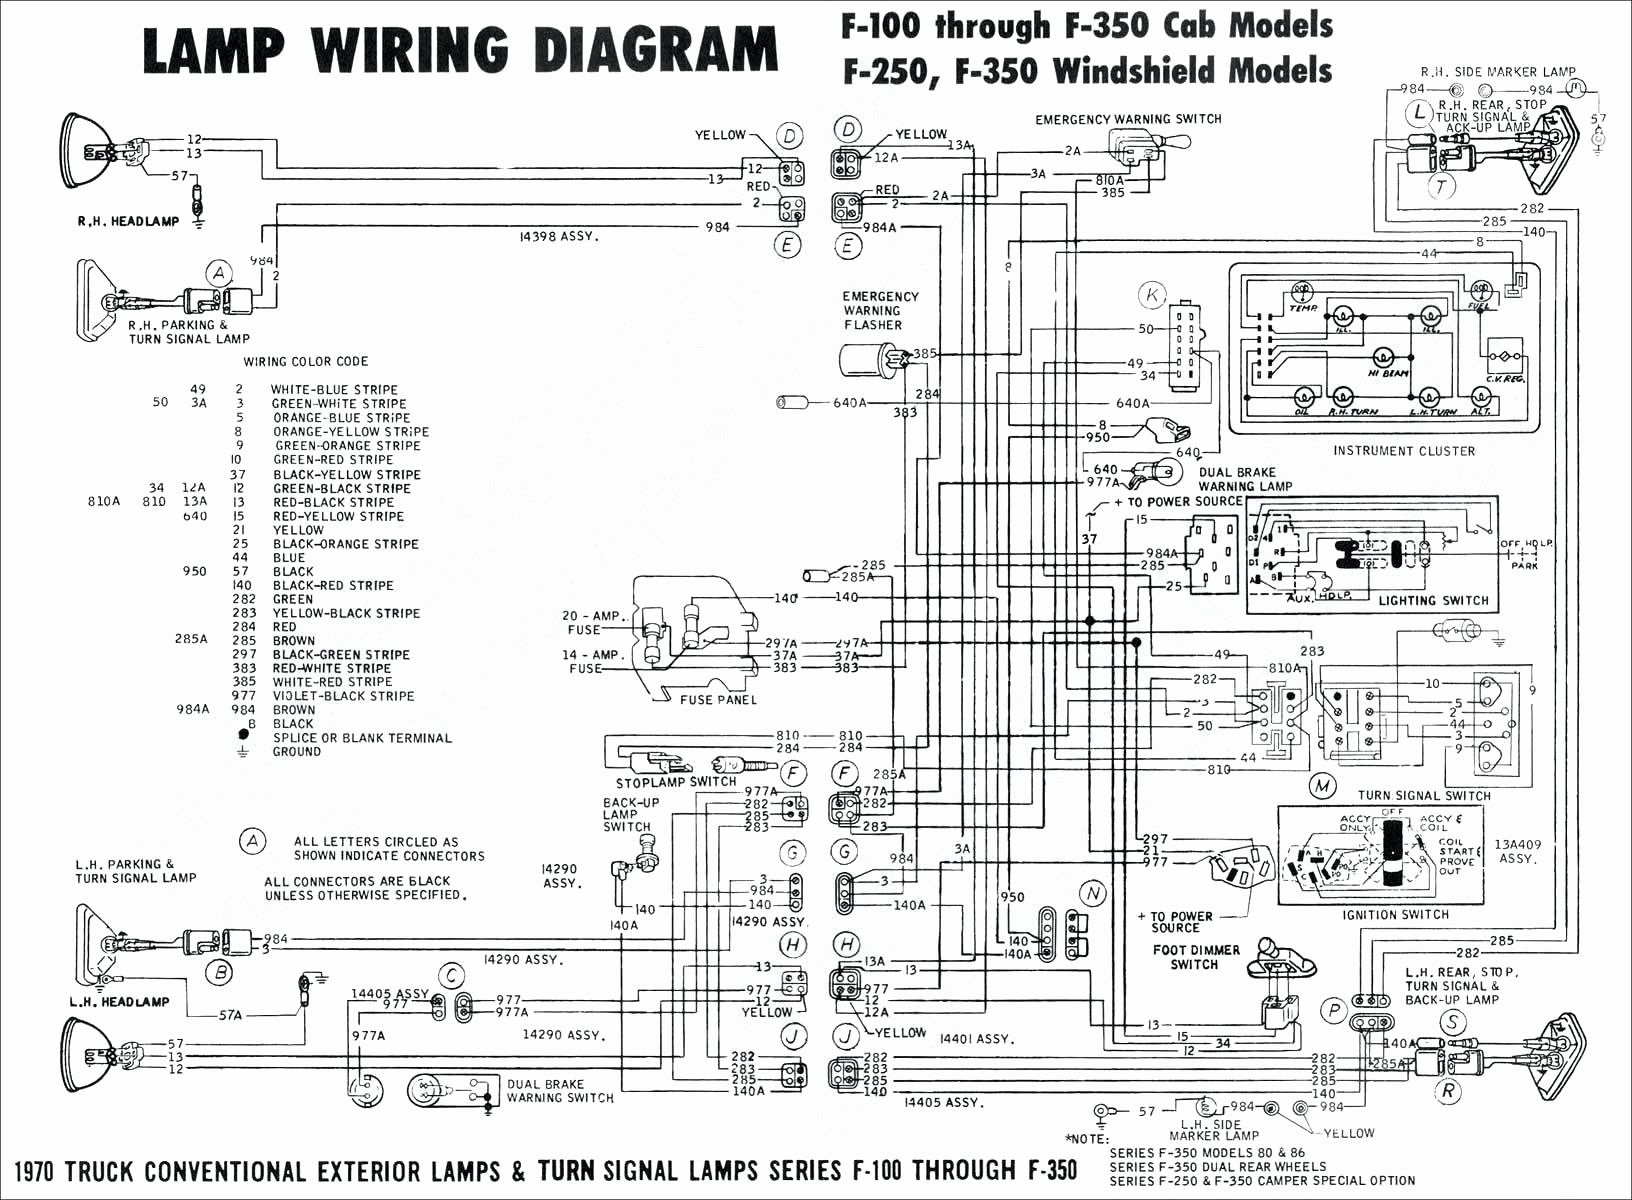 Two Way Light Switch Wiring Diagram New Zealand | Wiring Diagram - C M Trailer Wiring Diagram